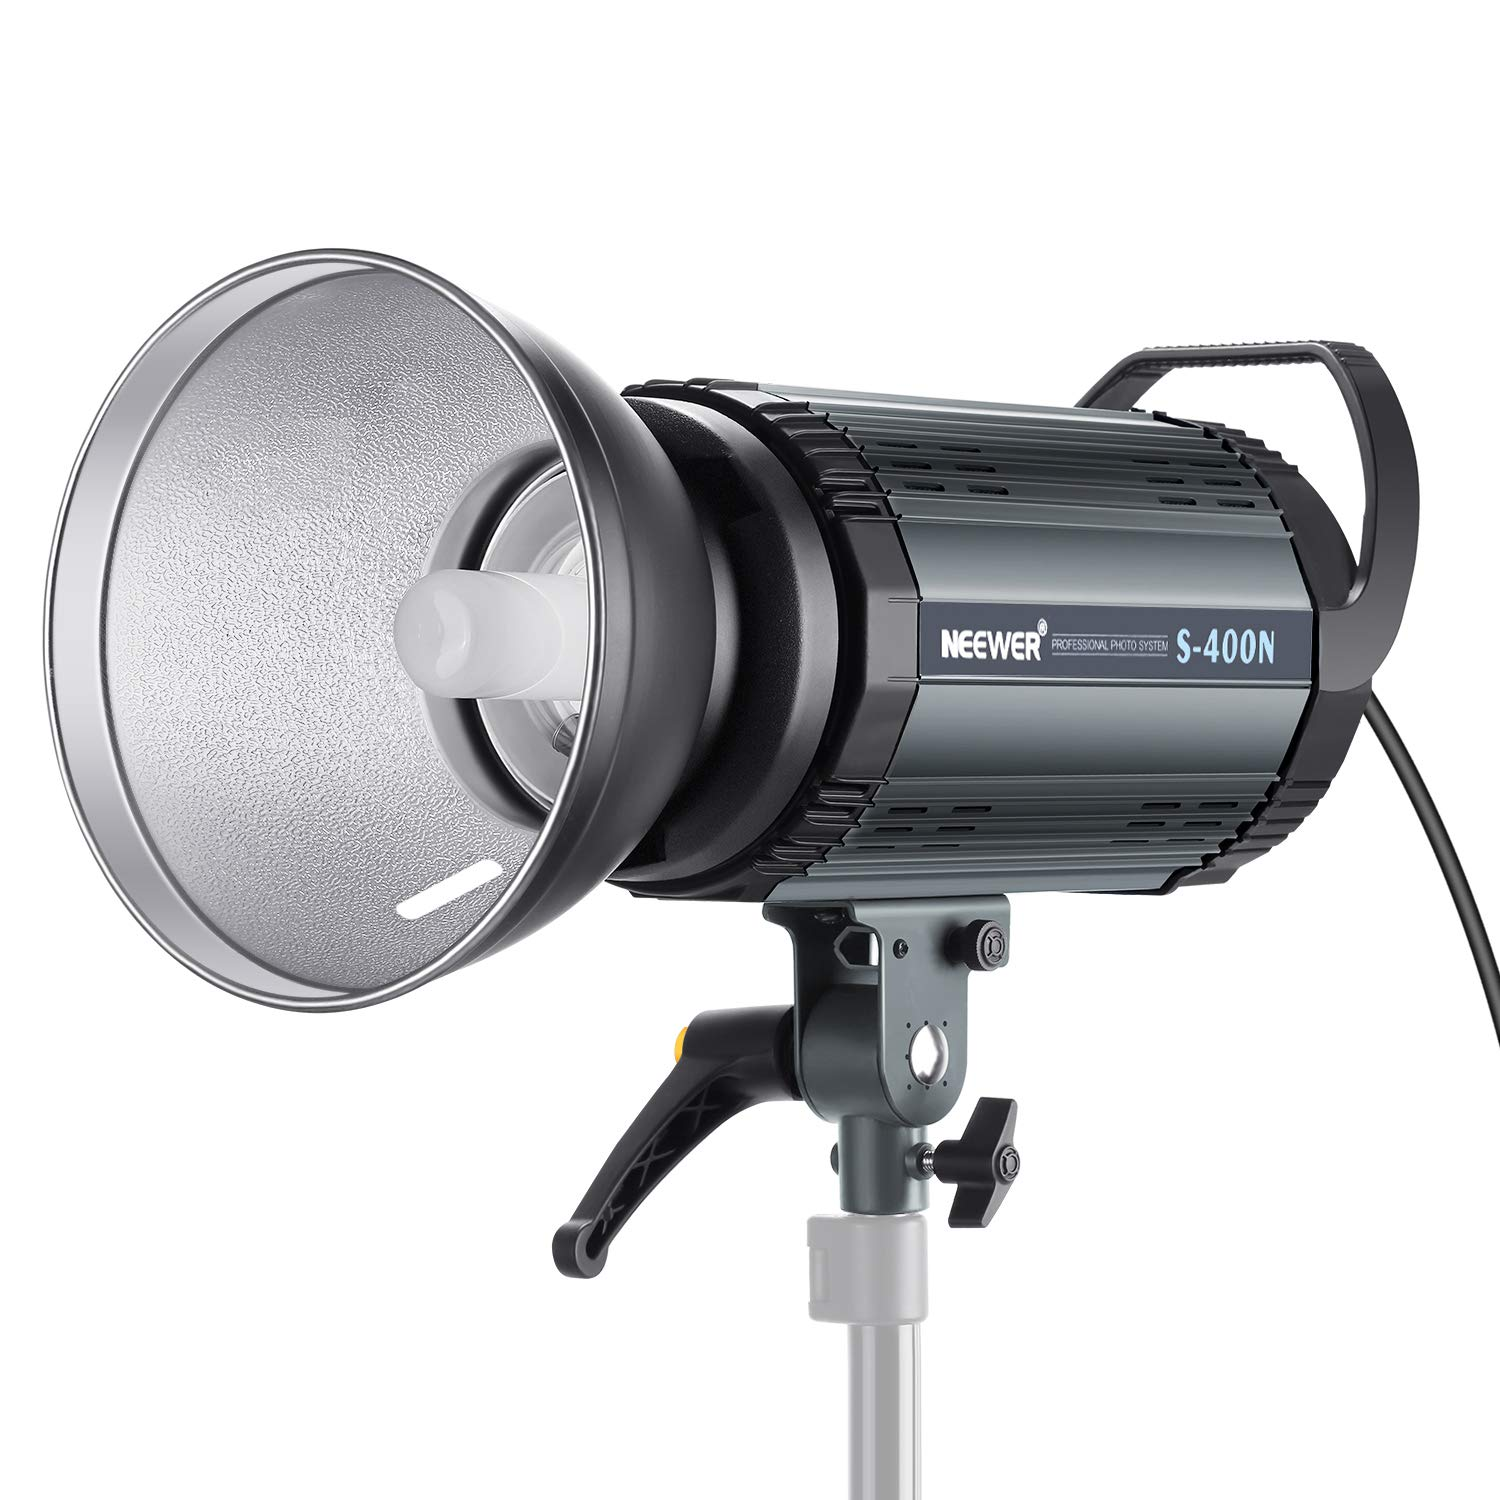 Neewer S300N Professional Studio Monolight Strobe Flash Light-300W 5600K with Modeling Lamp, Aluminium Alloy Professional Speedlite for Indoor Studio Location Model Photography and Portrait Photography 10090452@@##1